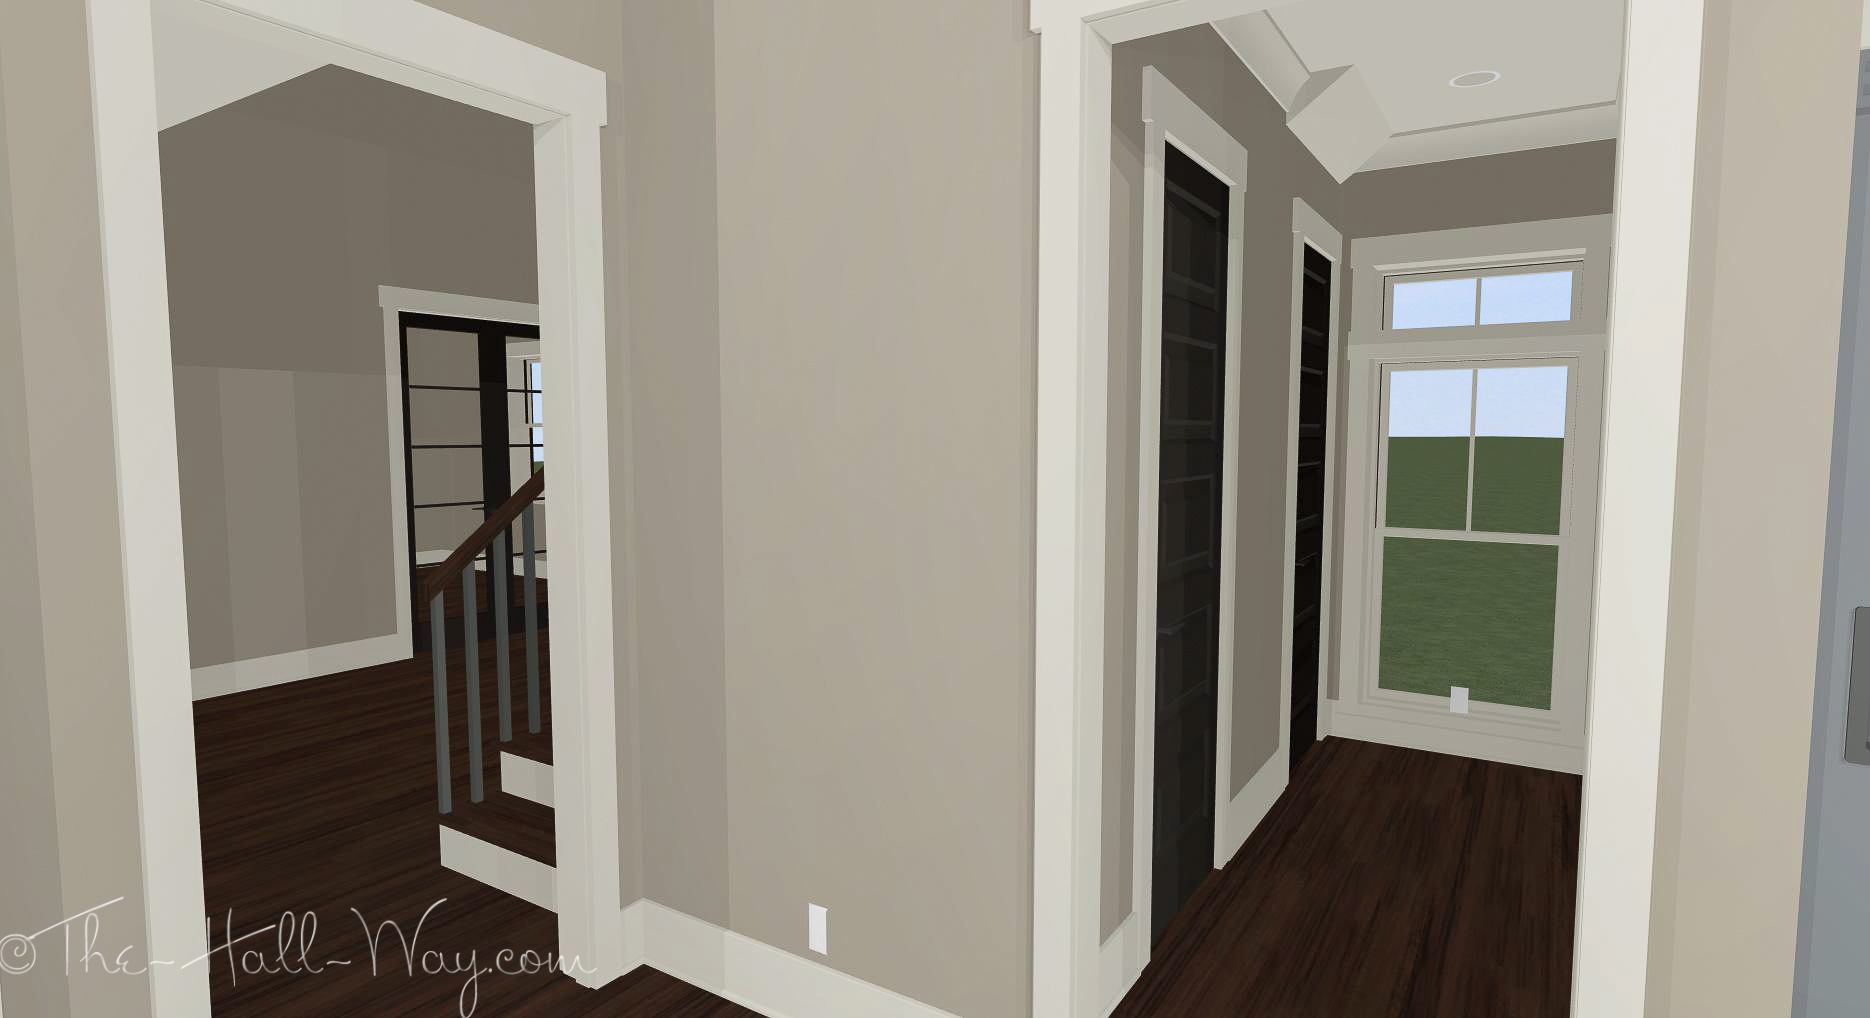 1018 #291E18 Door Color The Hall Way image Colored Entry Doors 47131870